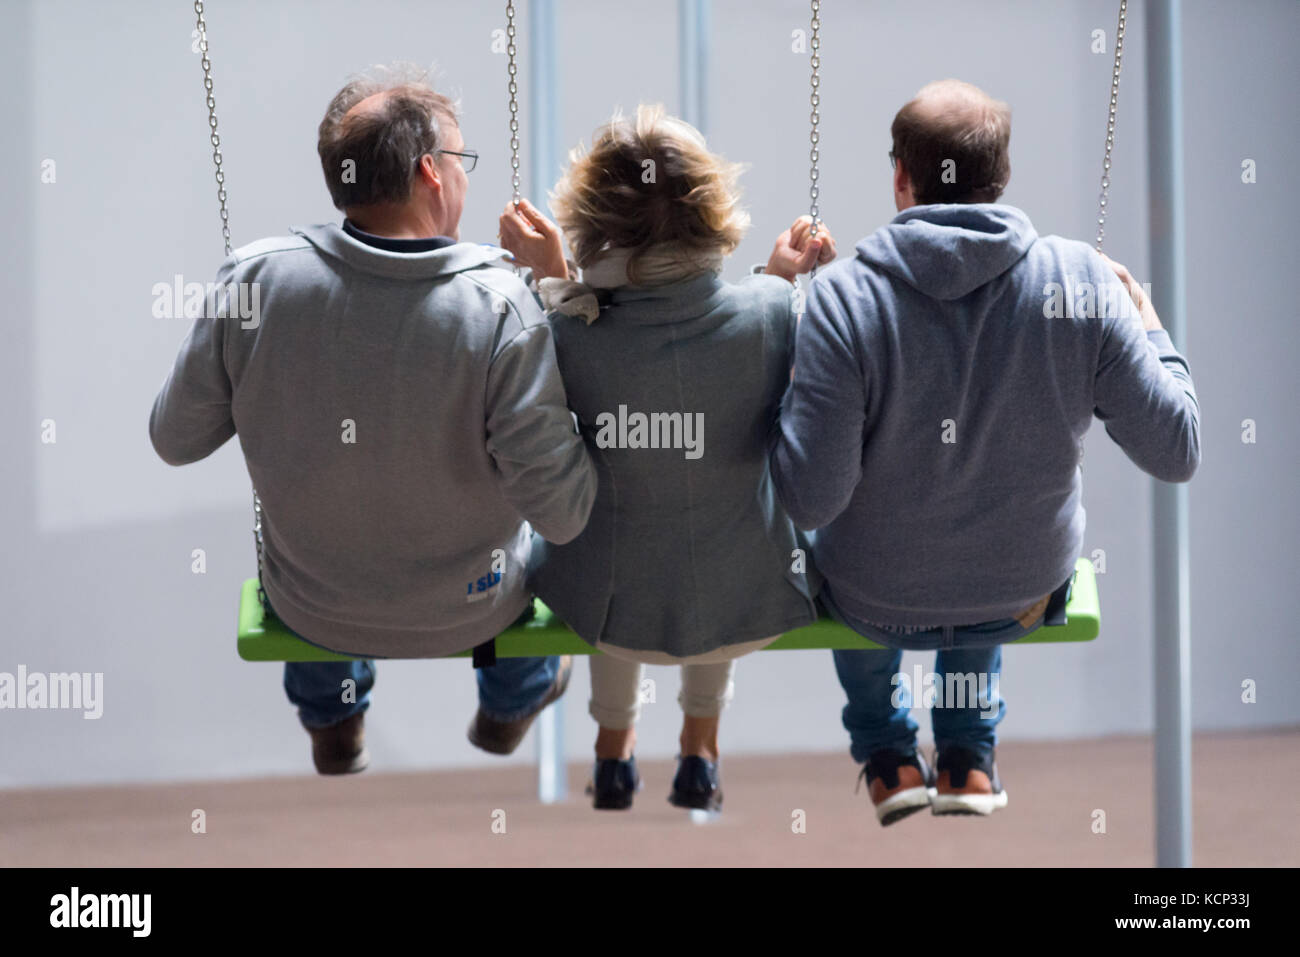 Three people swinging on an exhibit by Danish artists Superflex in the Turbine Hall of the Tate Modern art gallery, - Stock Image